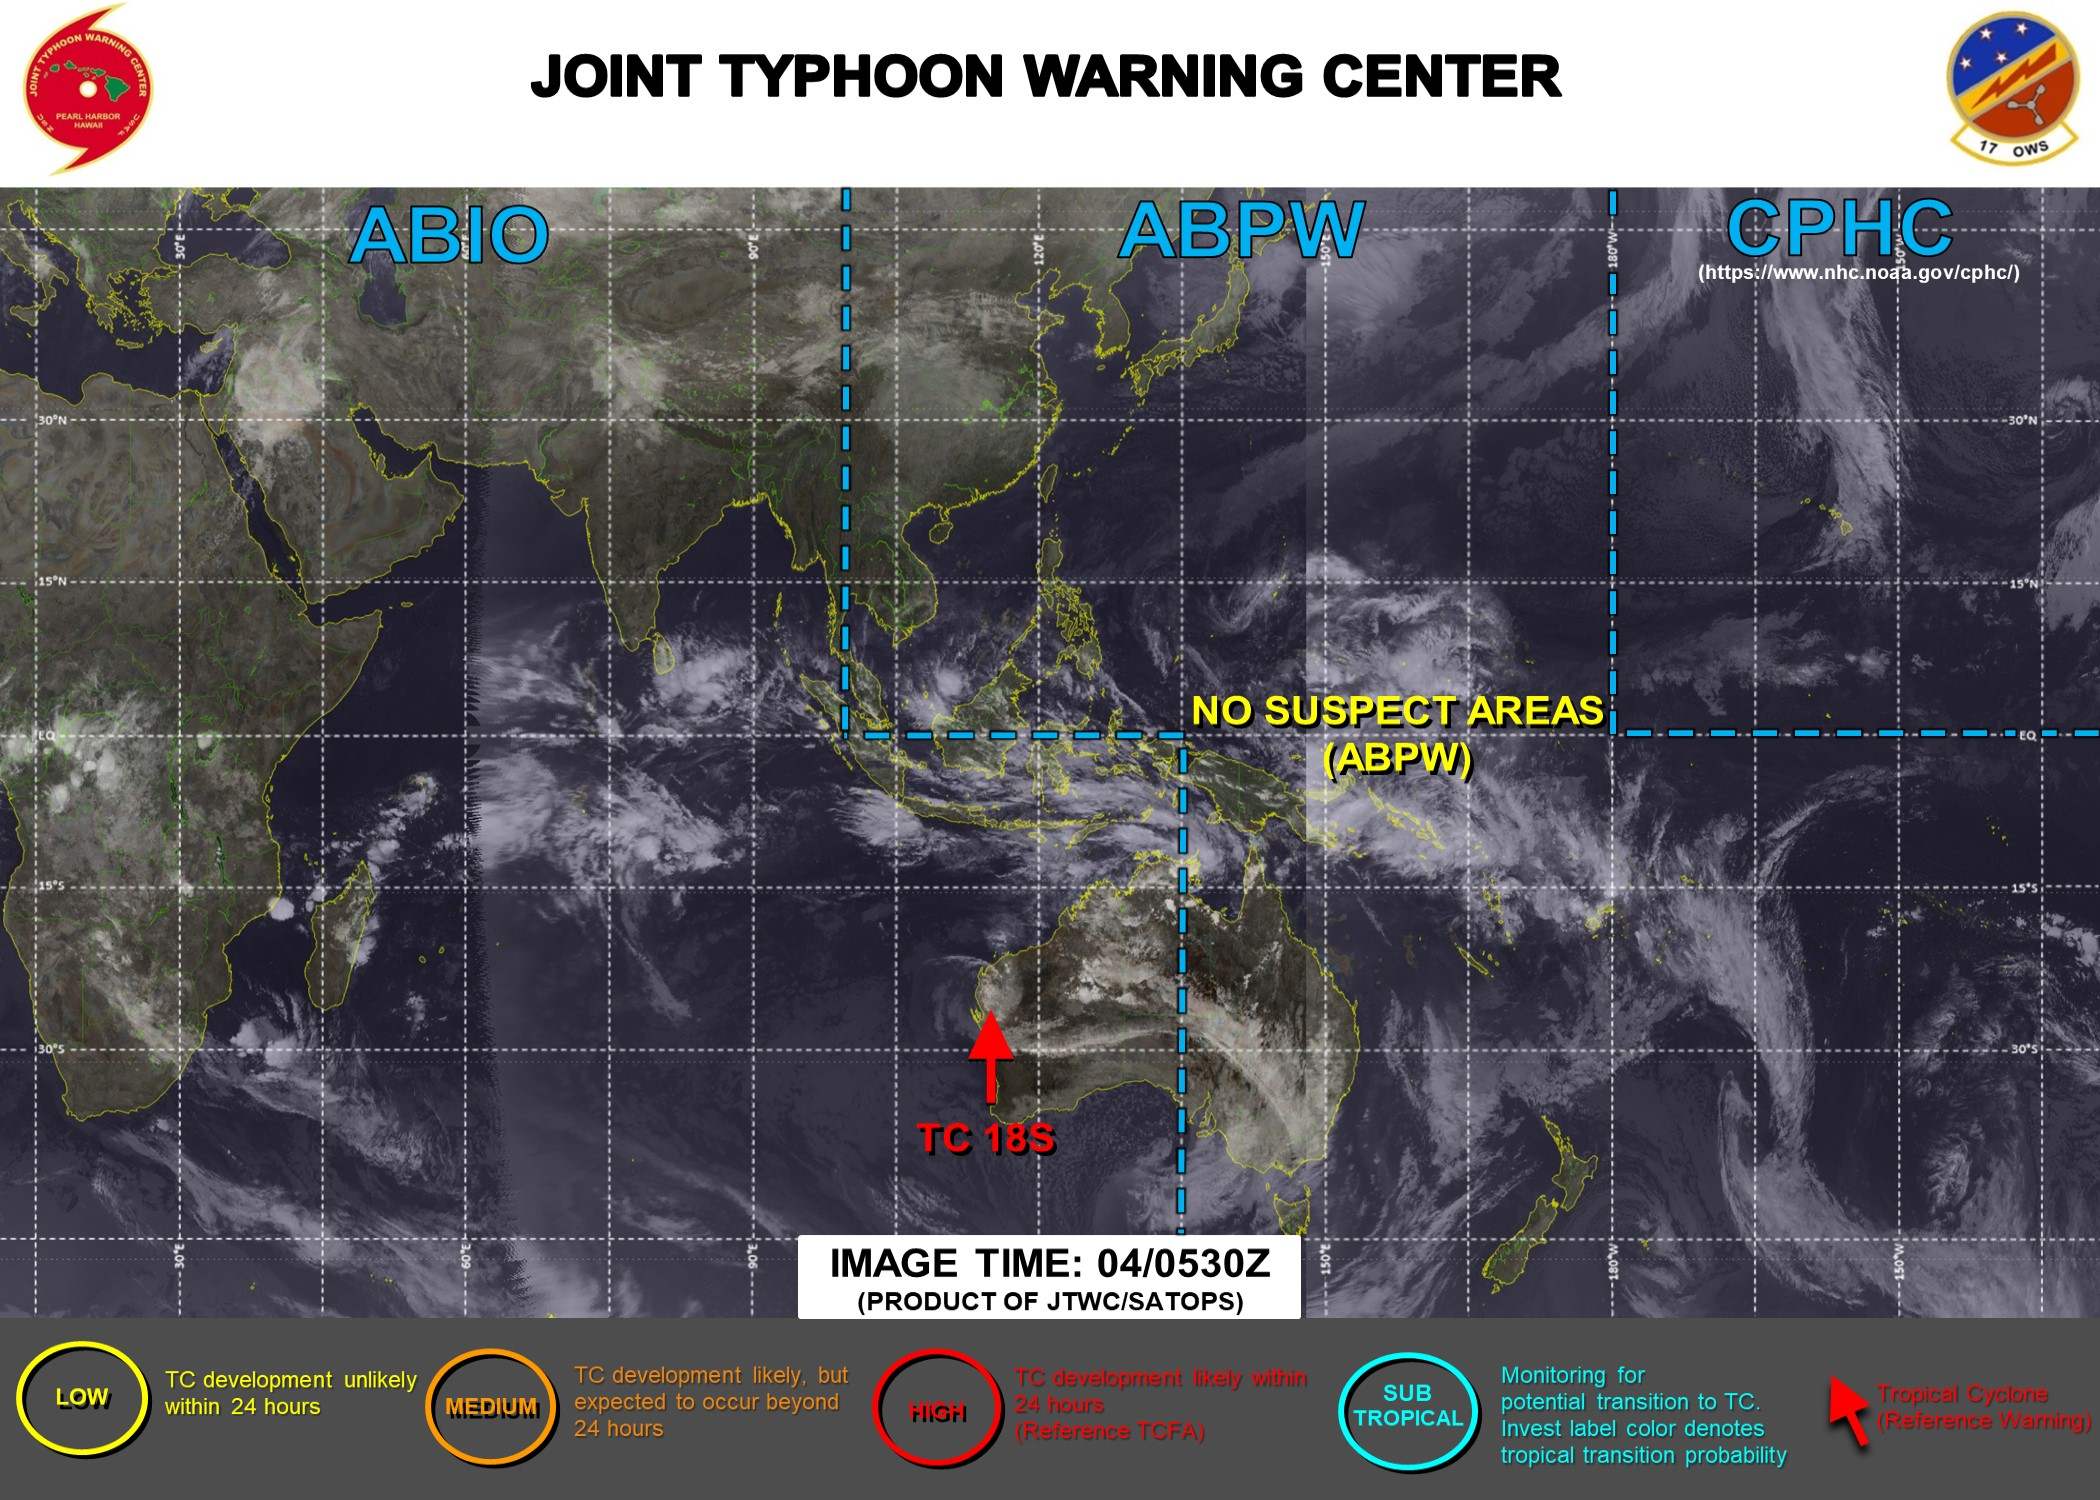 JTWC HAS BEEN ISSUING 6HOURLY WARNINGS ON 18S(NONAME). 3 HOURLY SATELLITE BULLETINS ARE PROVIDED FOR 18S AND THE REMNANTS OF 17P(LUCAS).